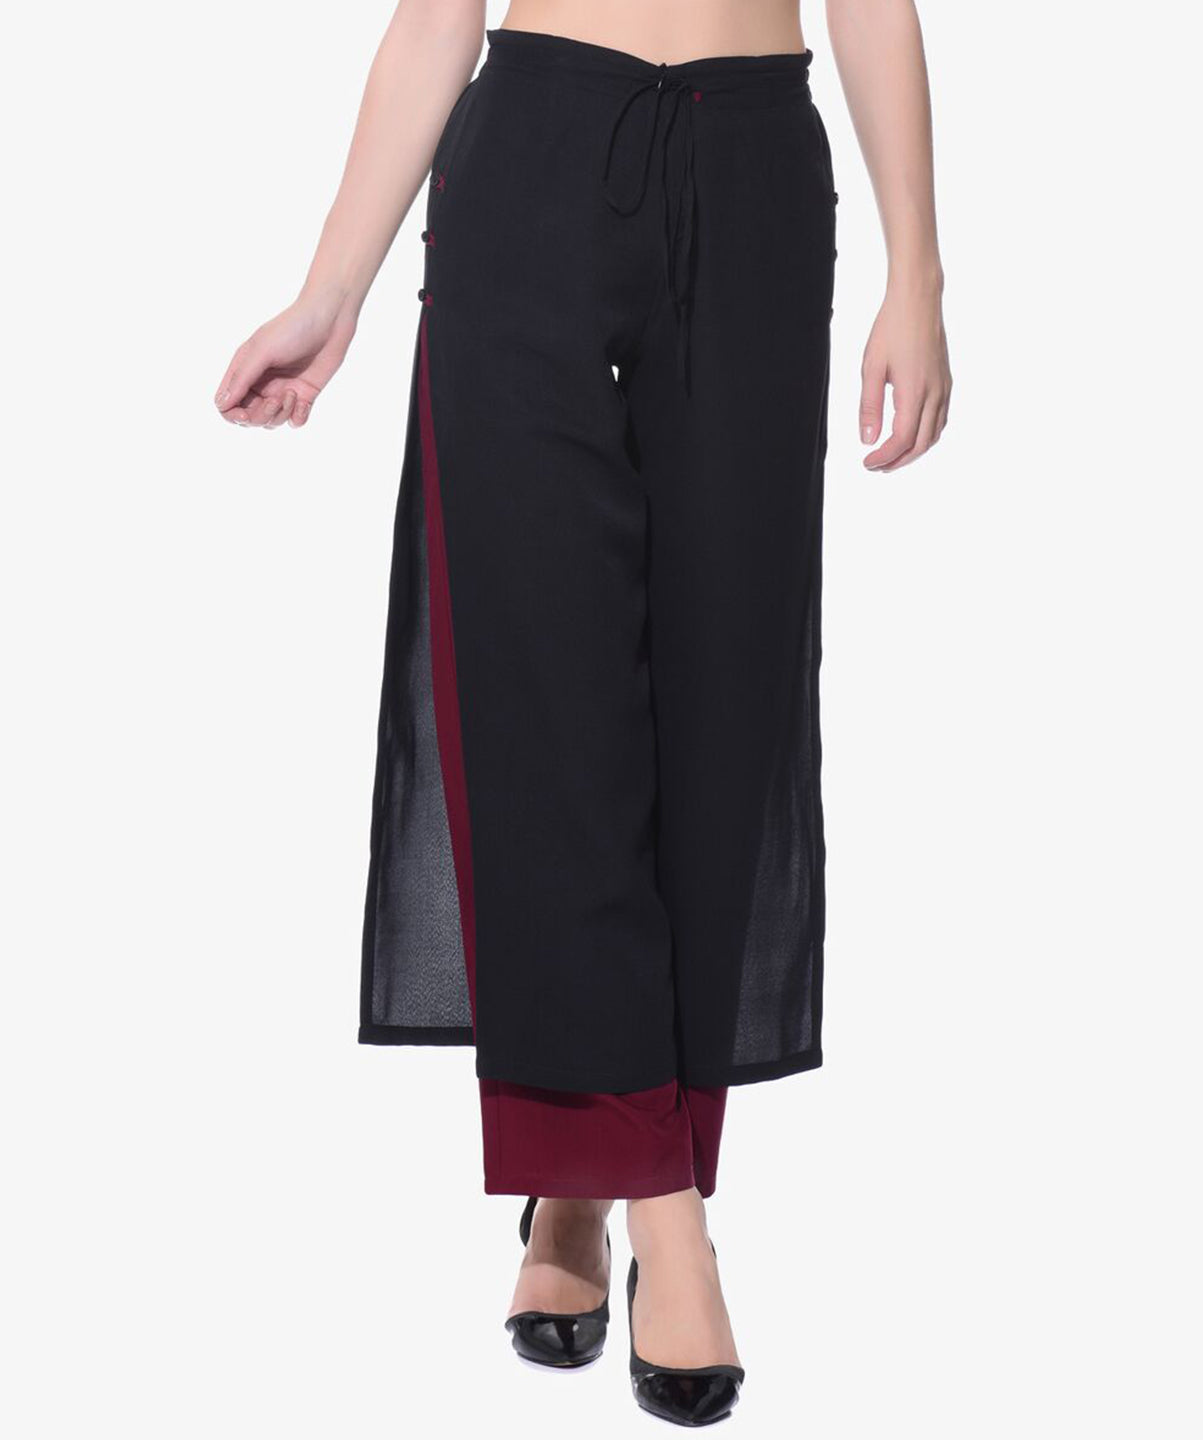 Colorblocked Black & Maroon Layered Palazzos - Uptownie